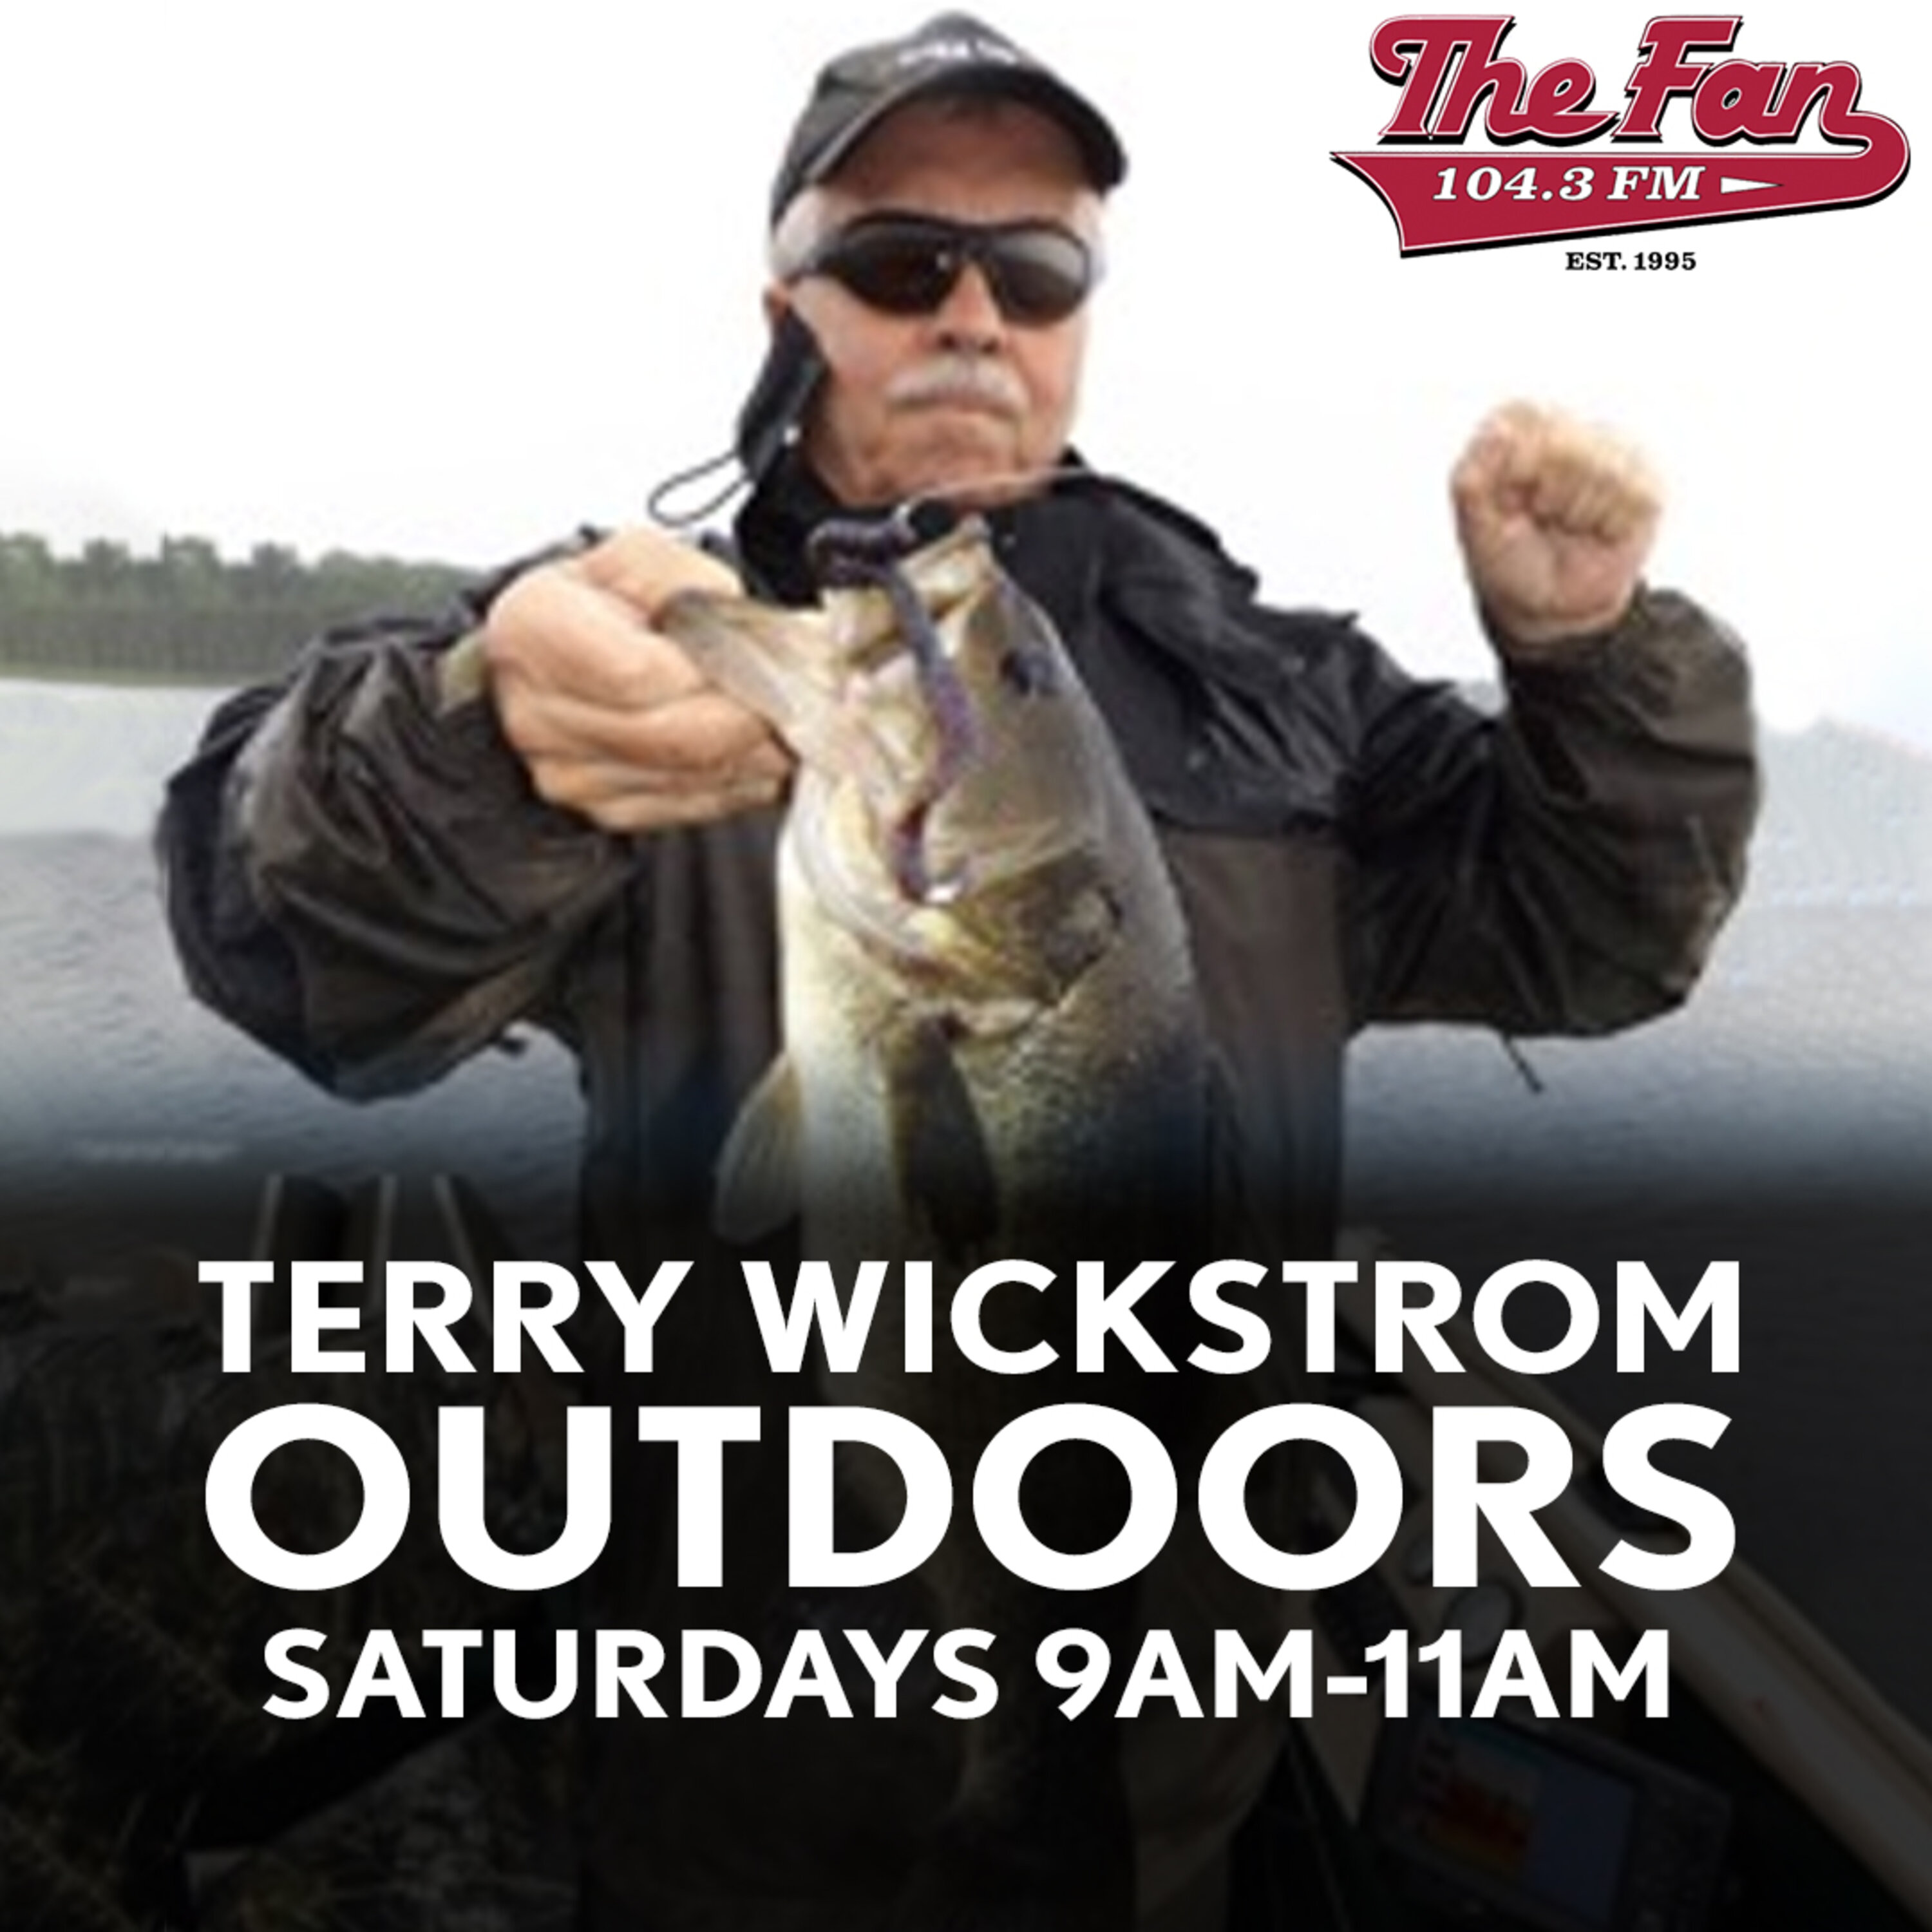 Terry Wickstrom Outdoors Cover Image